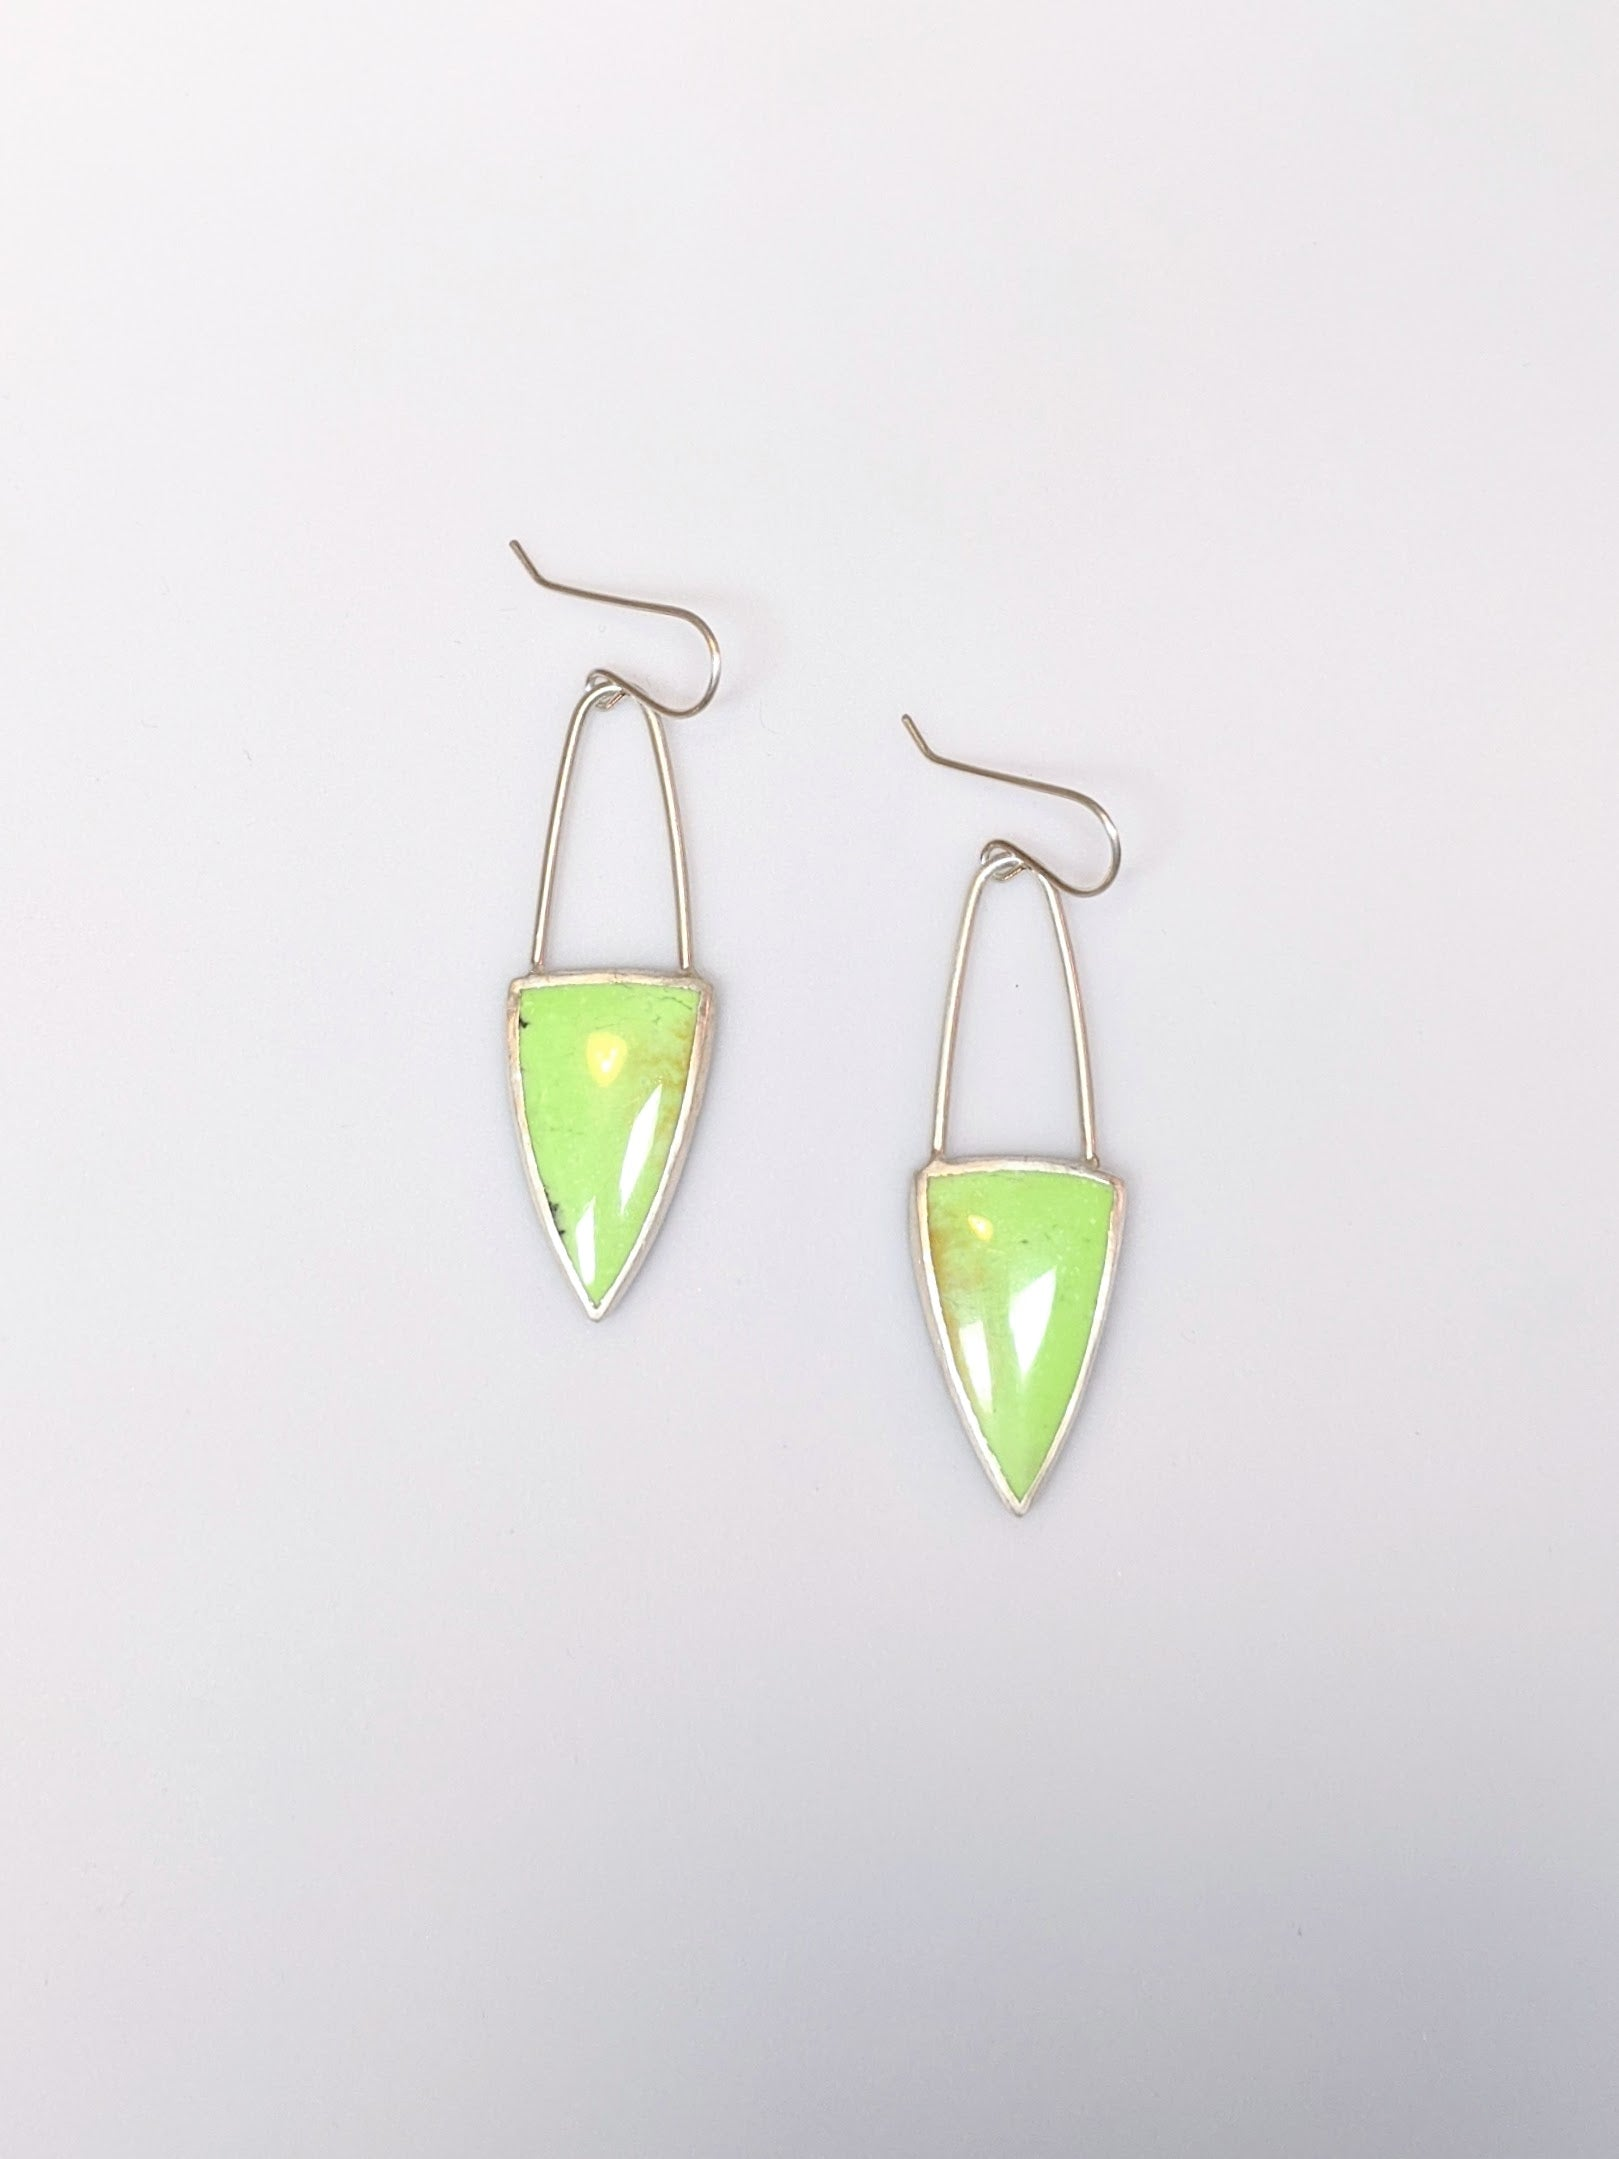 Australian Citron Chrysoprase Triangle Earrings